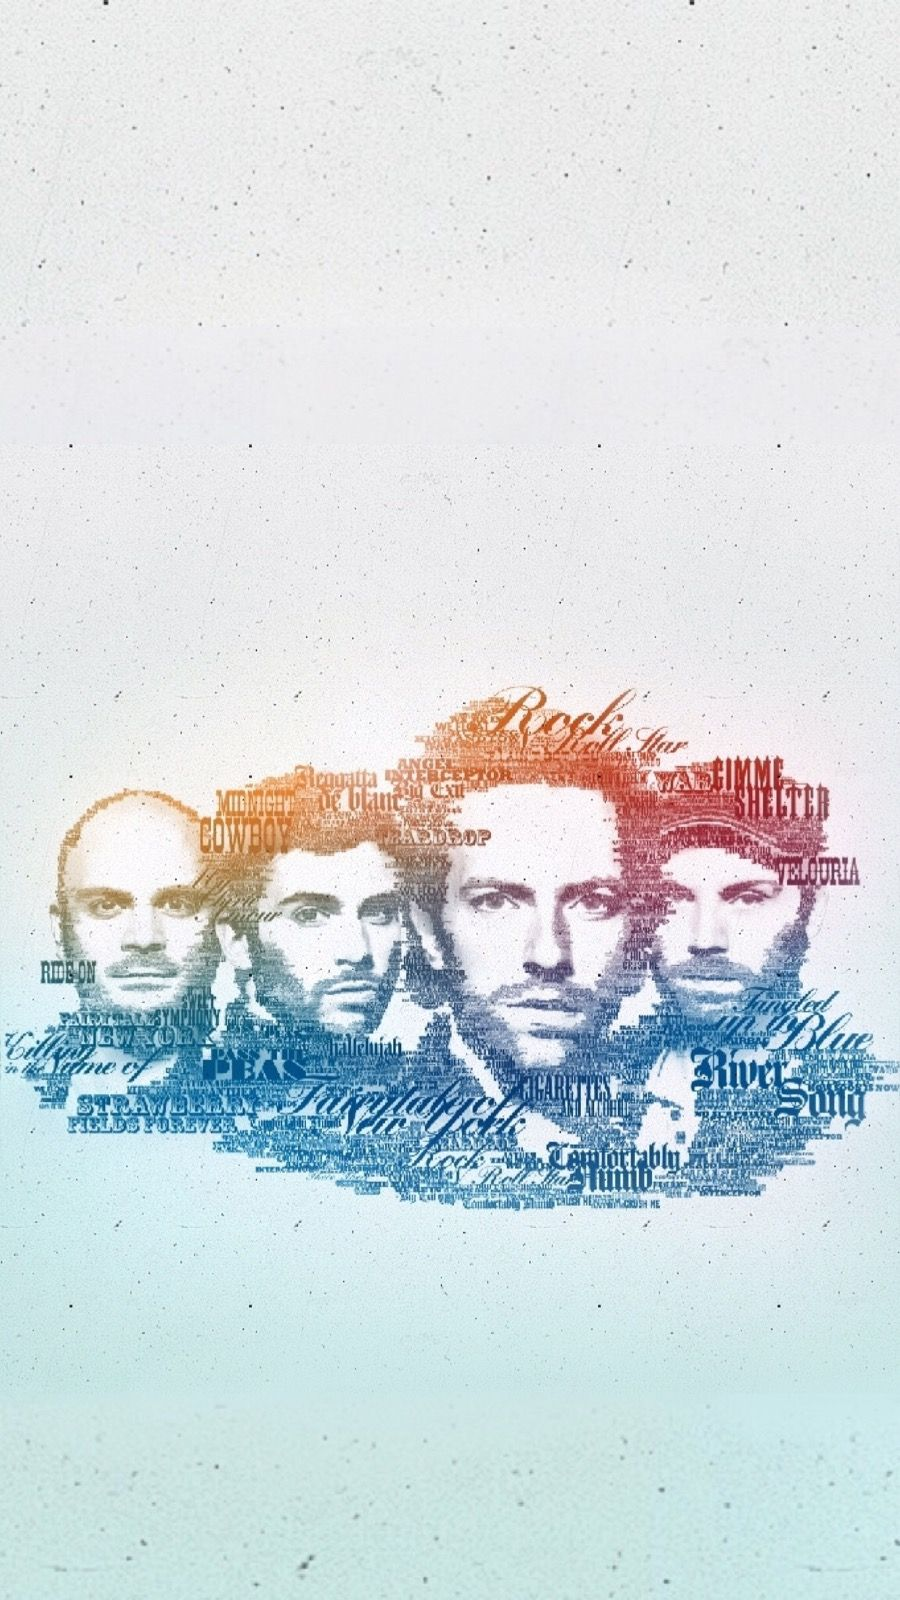 Coldplay Wallpaper For Iphone 76s6 In 2019 Coldplay